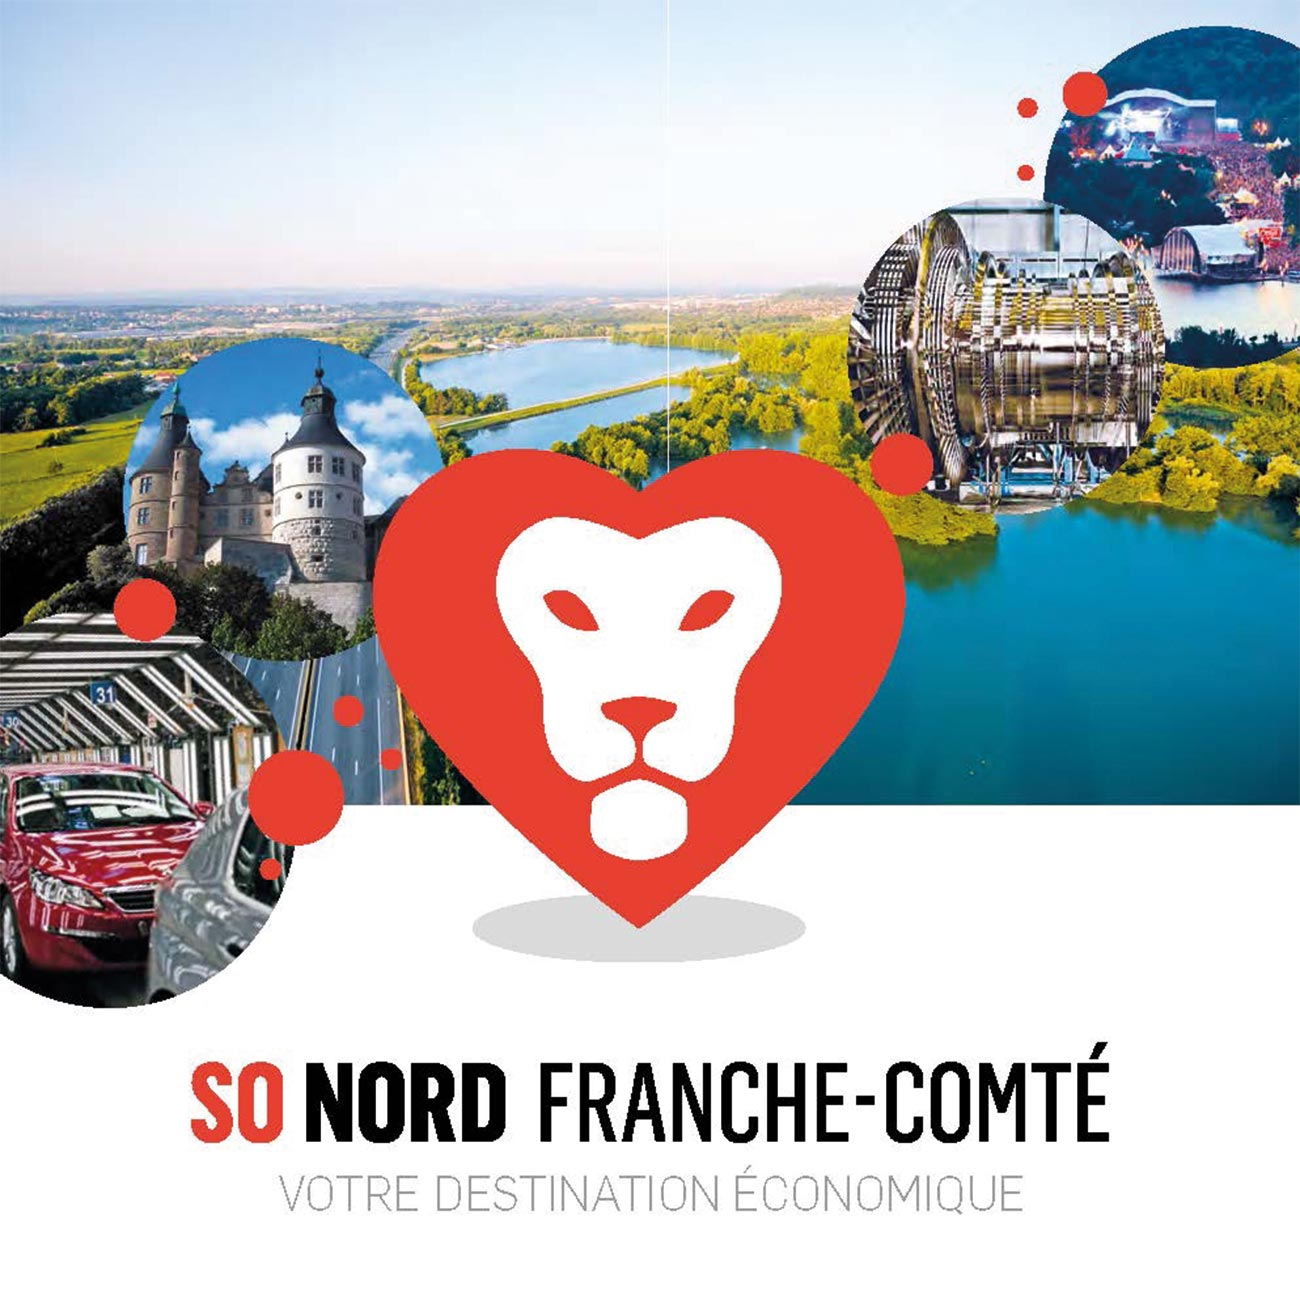 Documentation - SO Nord Franche-Comte_Destination économique